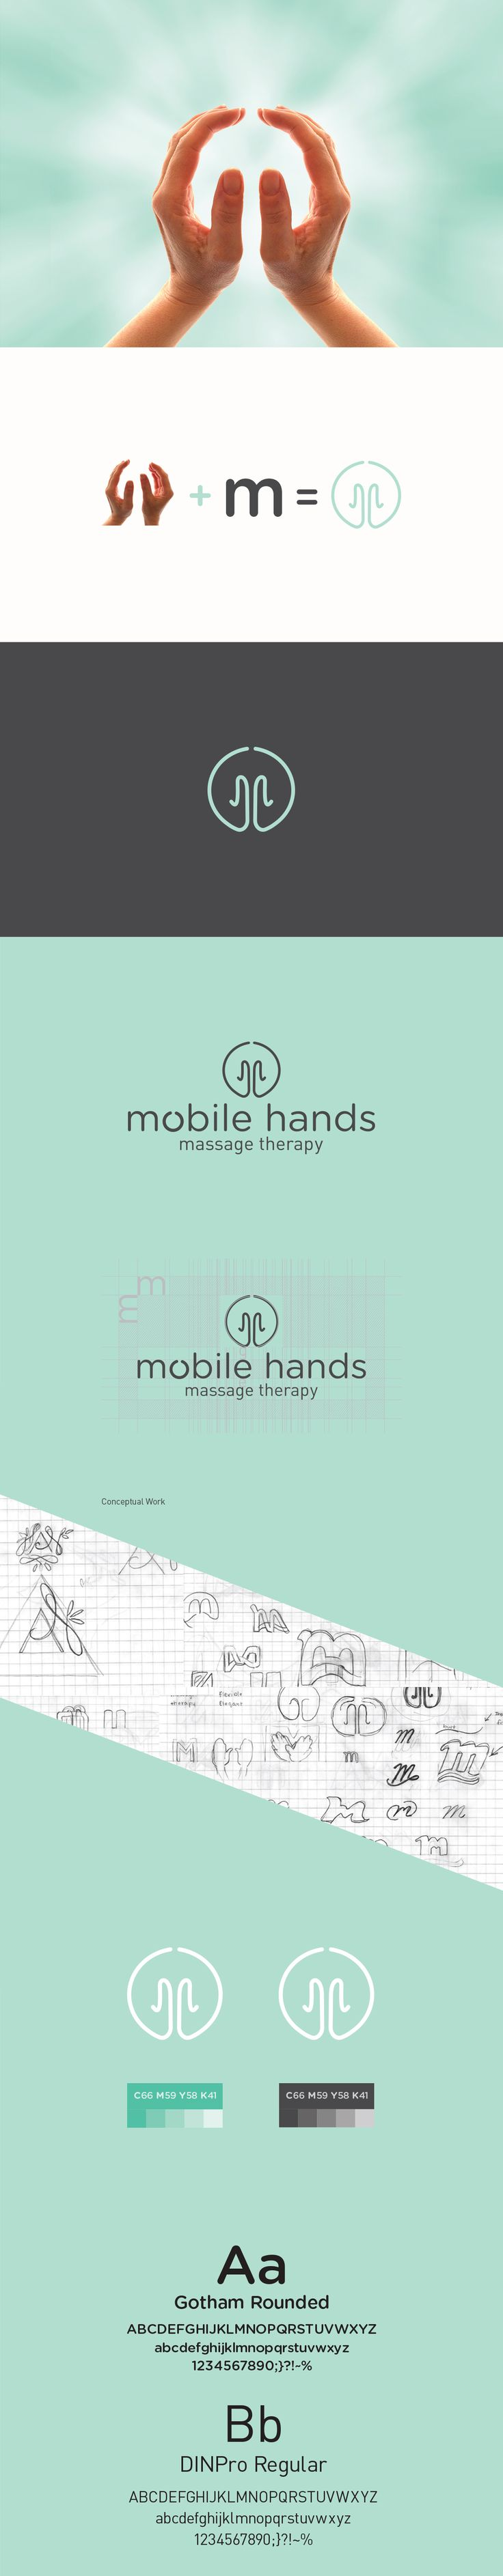 Branding and Logo Development for Massage Therapist. by Thain Lurk www.thaincreative.com